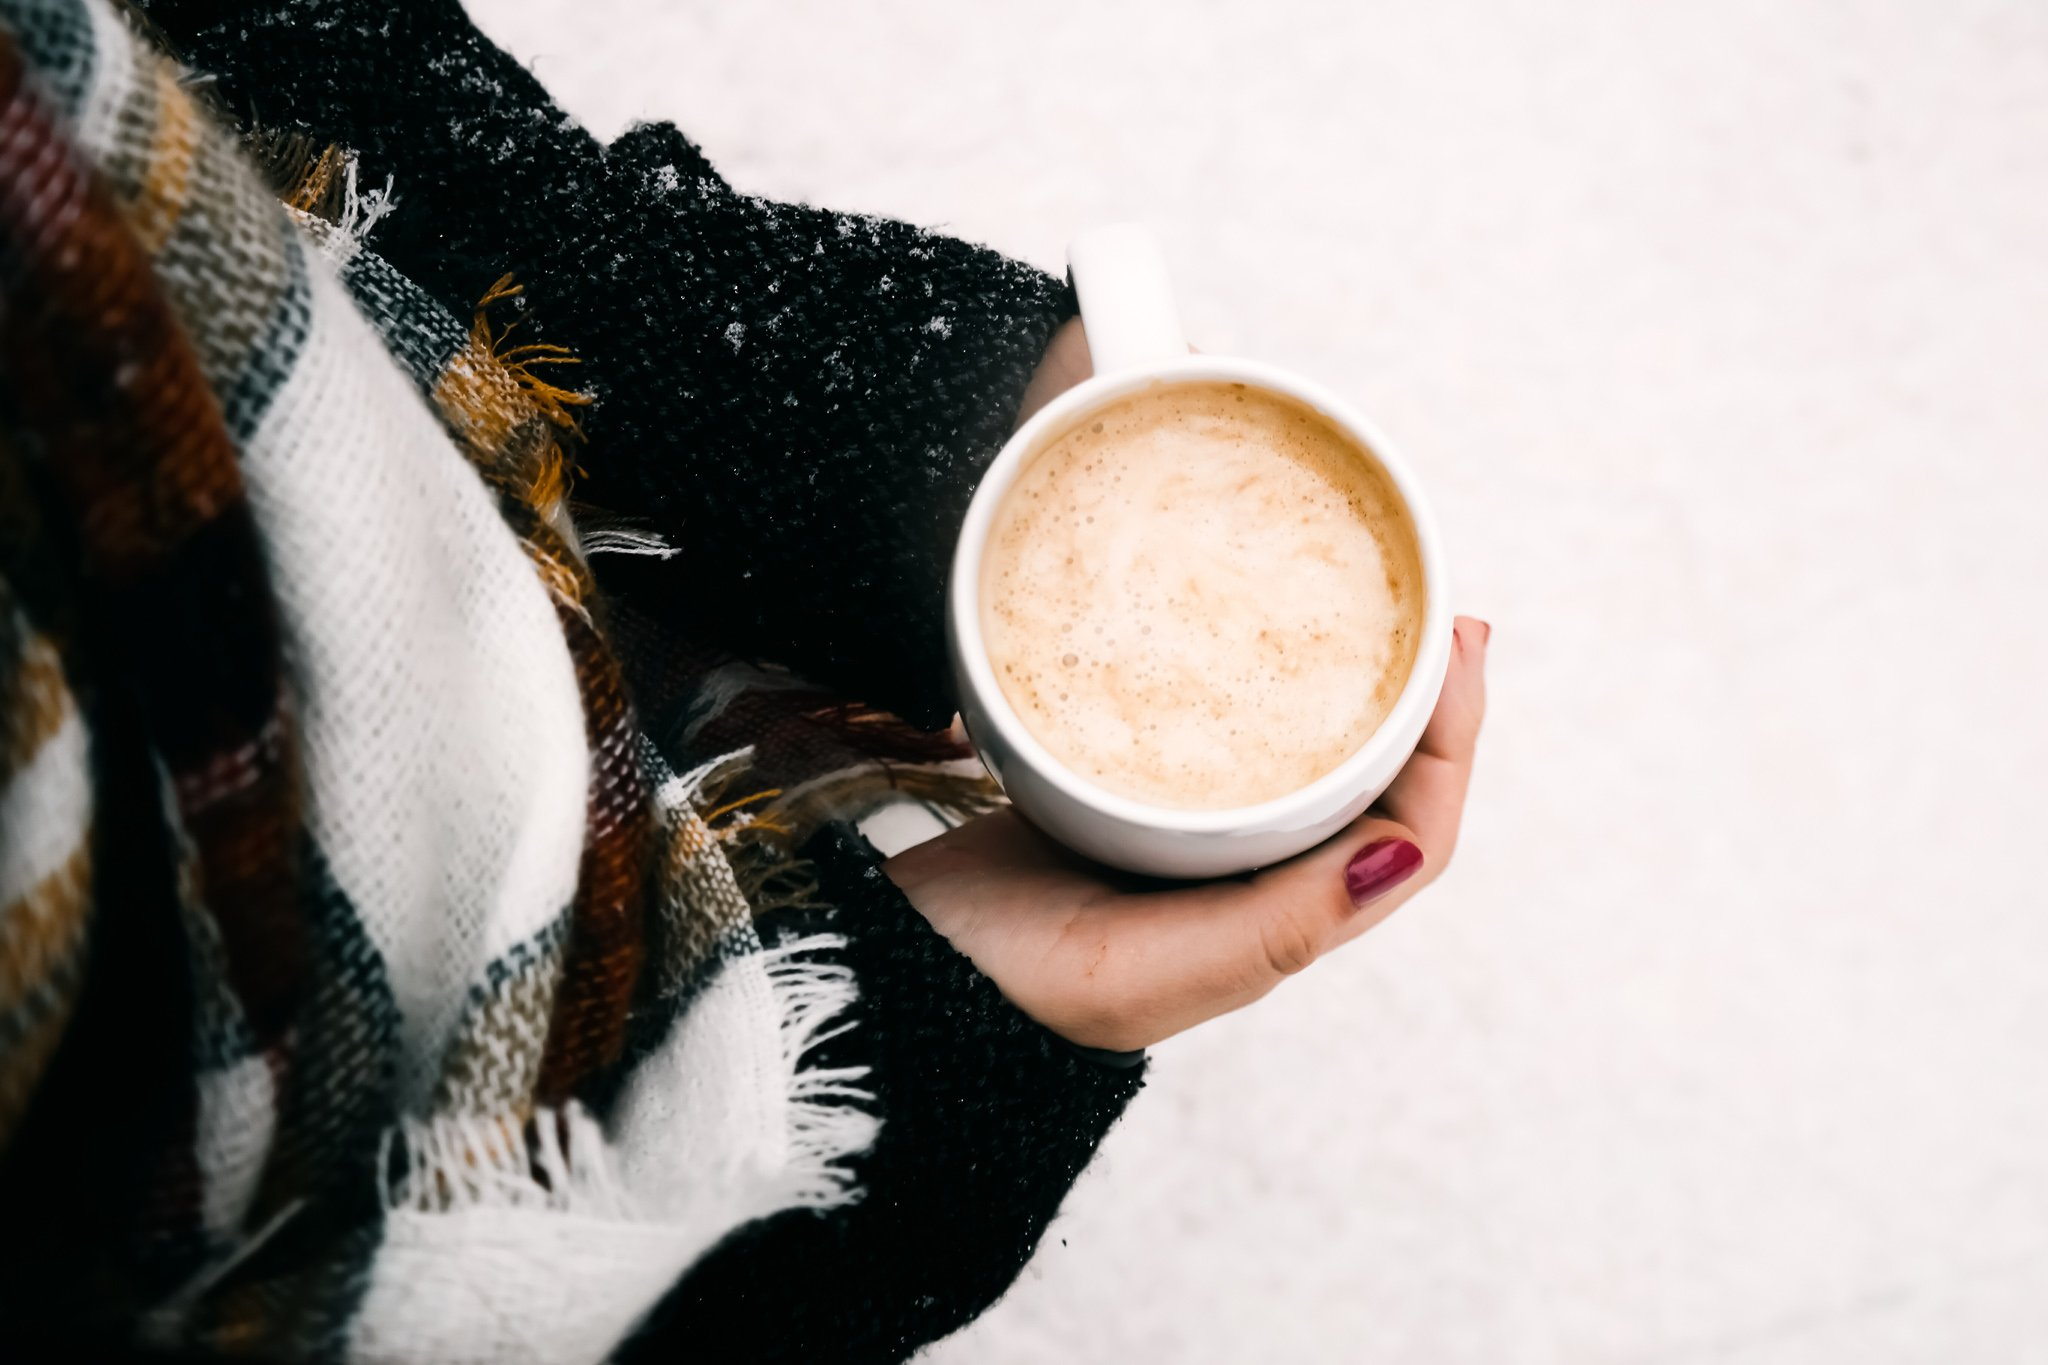 brigitte-tohm-latte in the cold - best outfit accessory